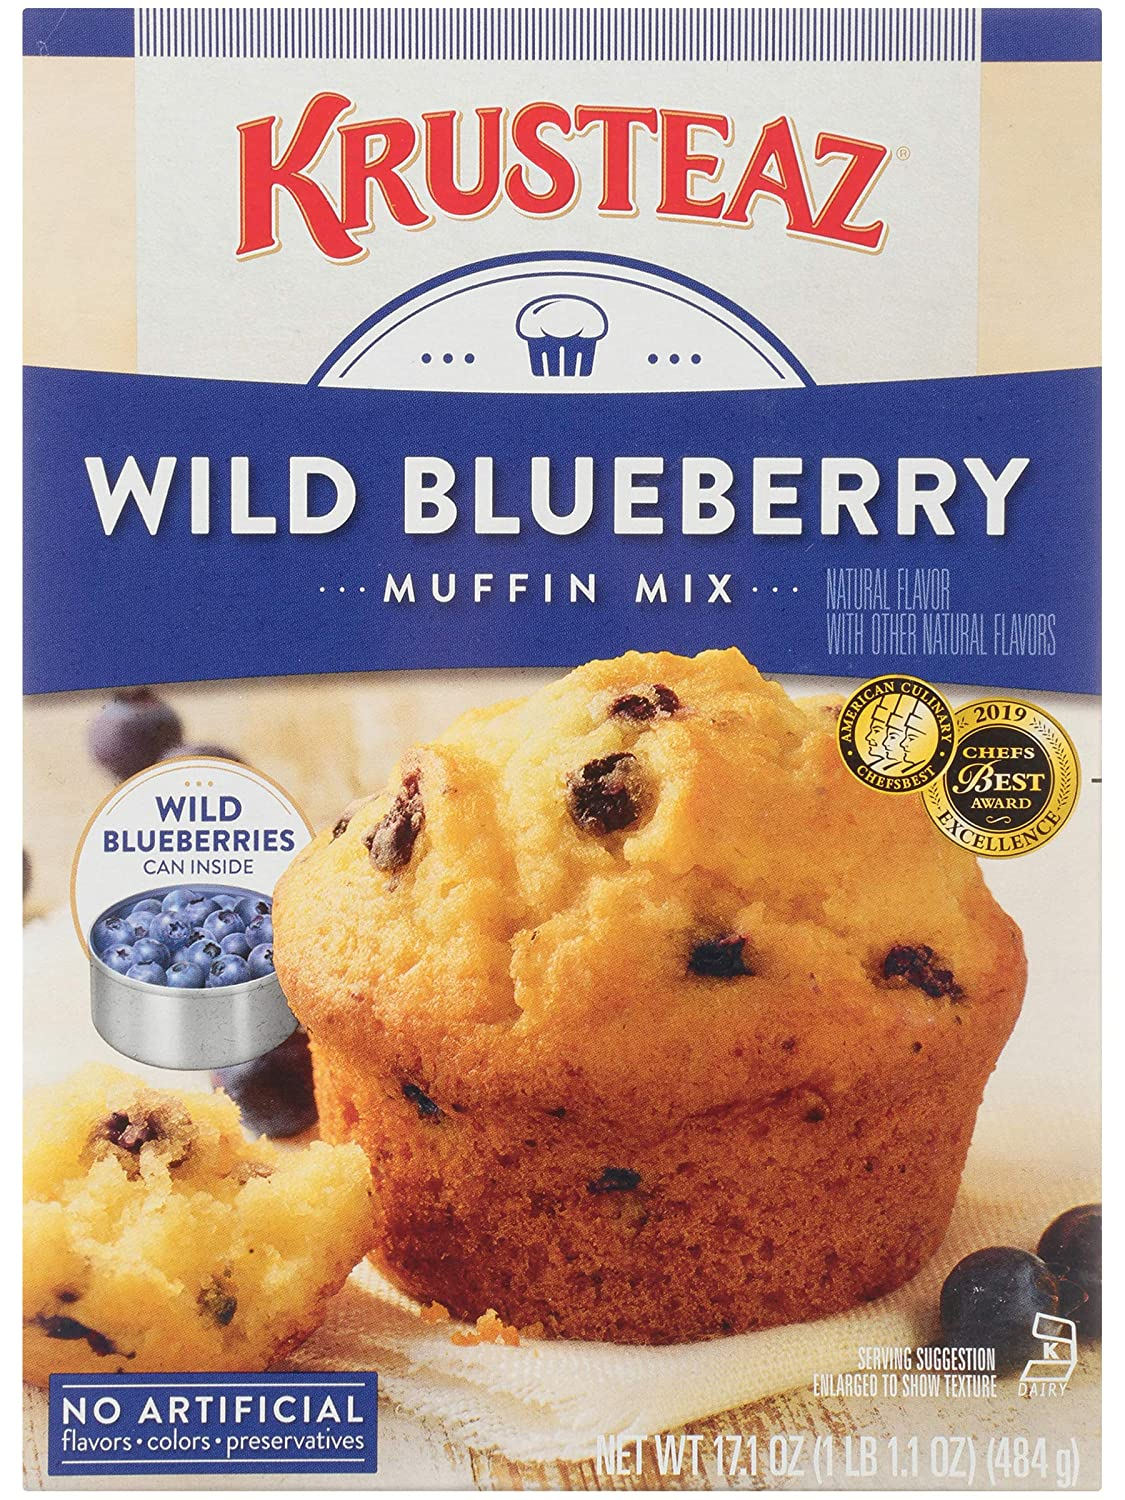 Krusteaz Wild Blueberry Muffin Mix No Artificial - Colo Free shipping anywhere in Quality inspection the nation Flavors